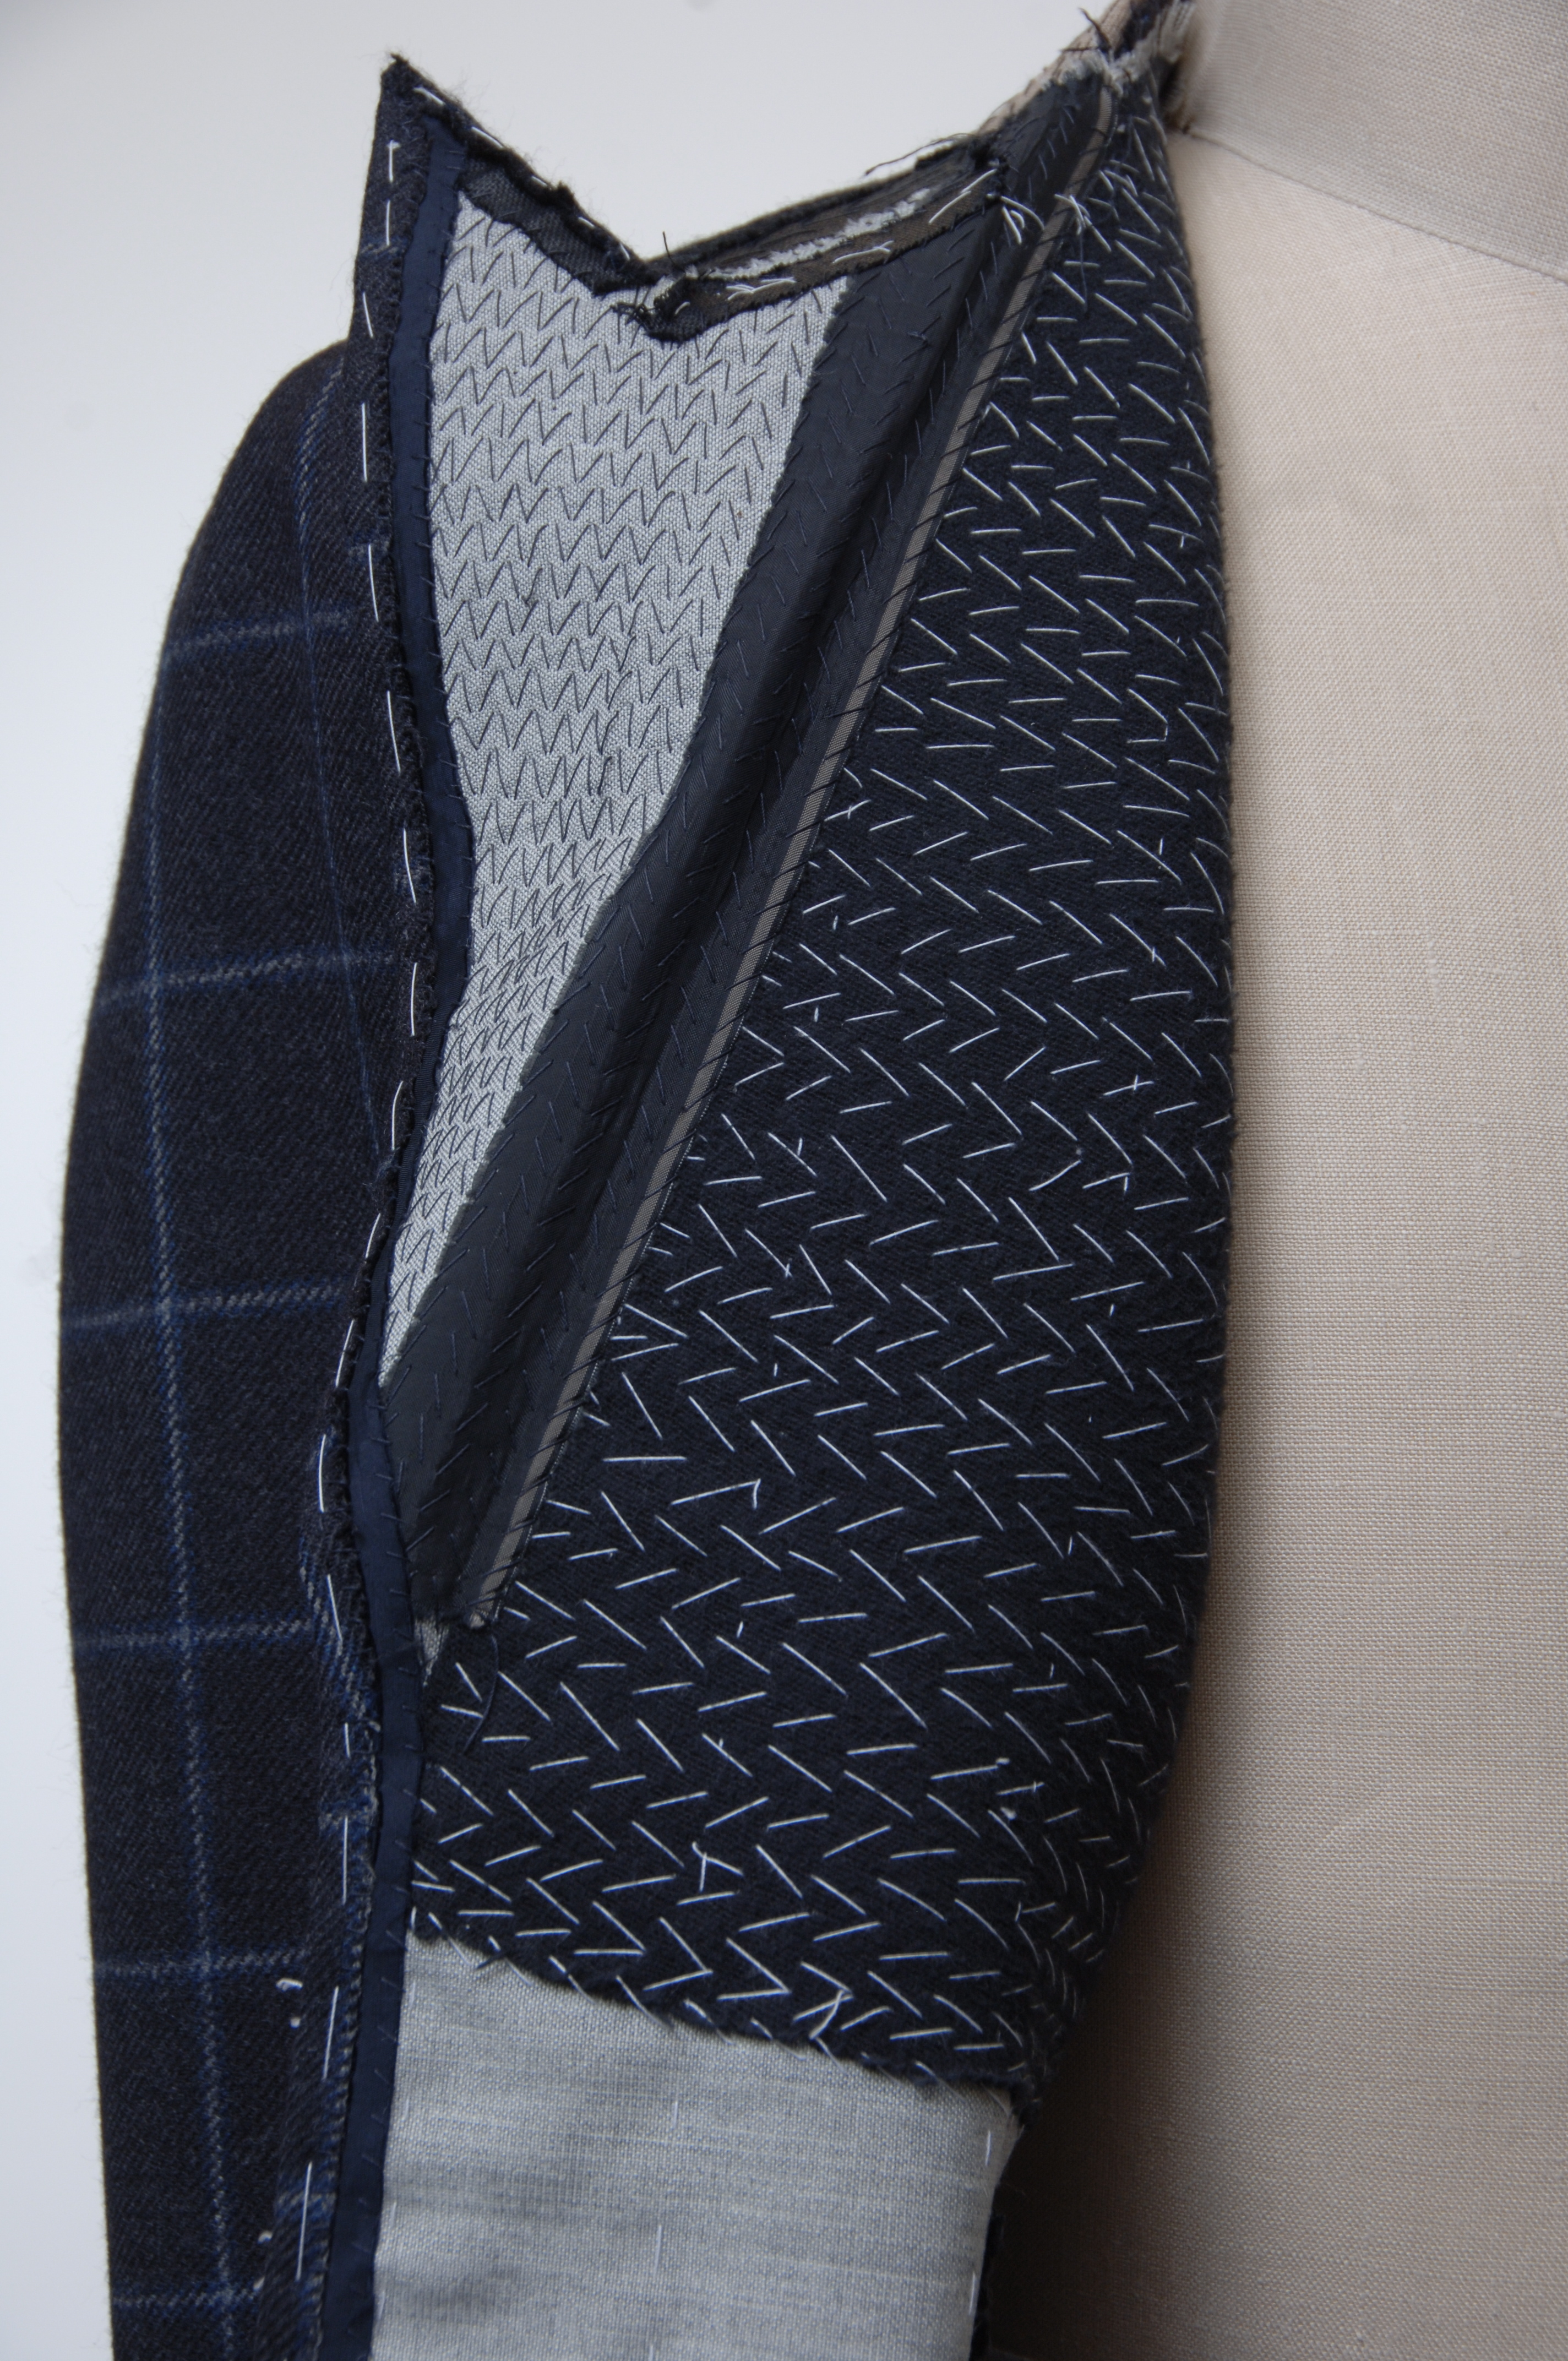 Jon Green Bespoke - Detail